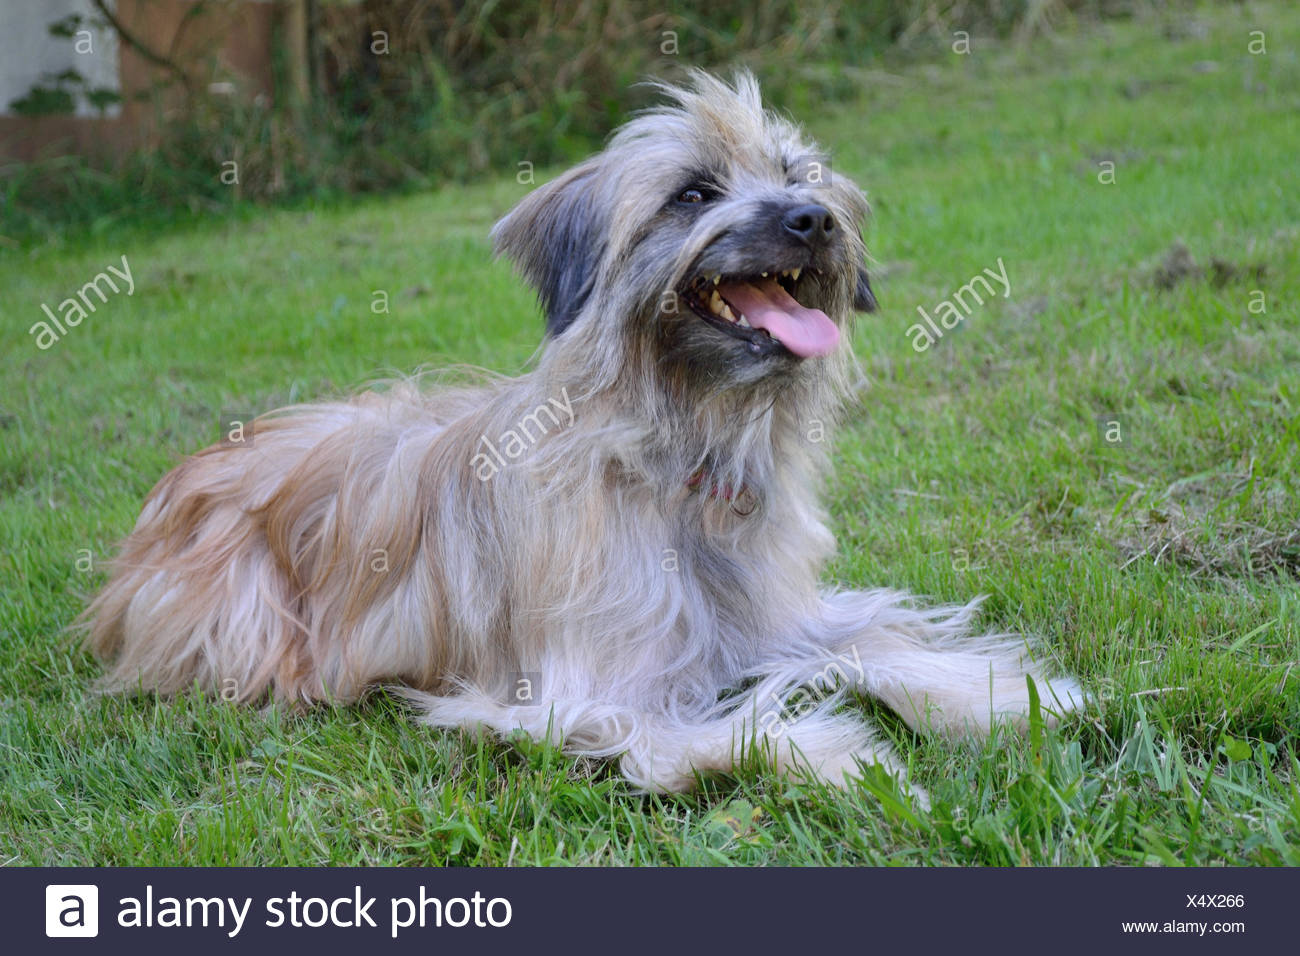 long-haired Pyrenean Shepherd - Stock Image